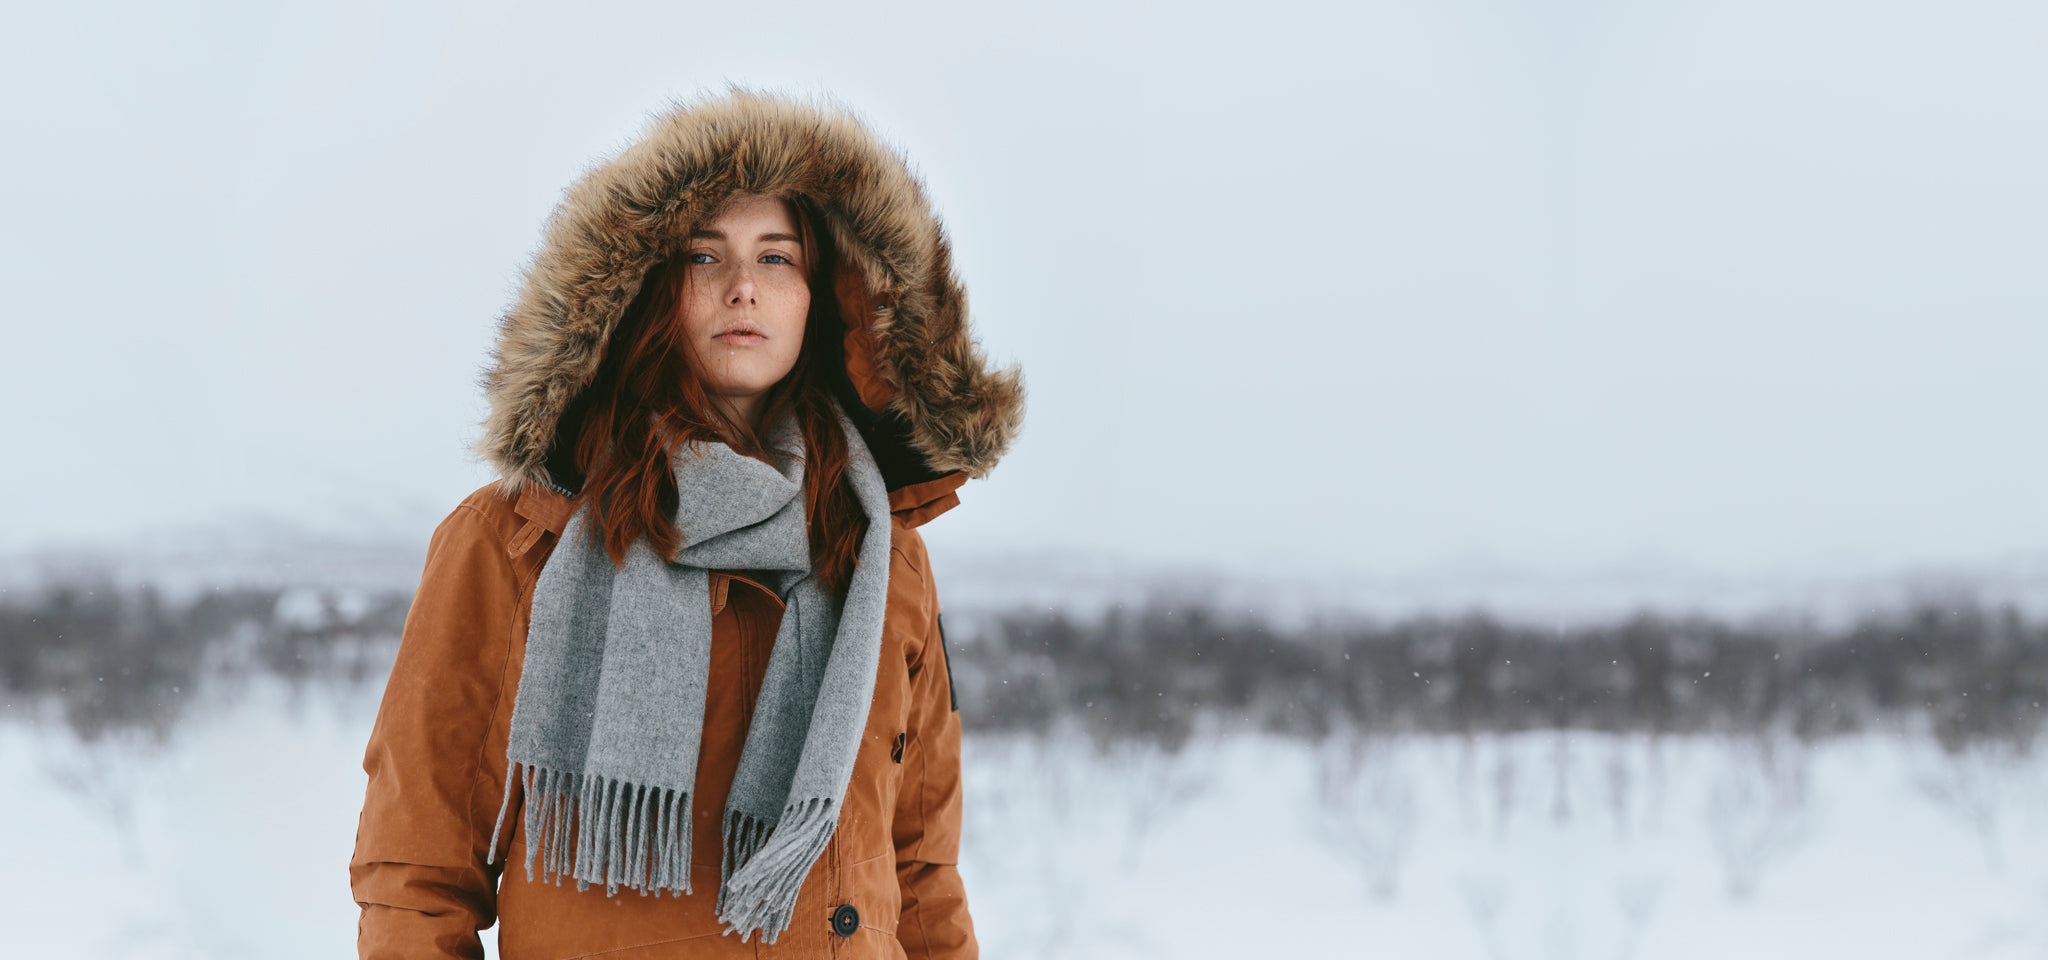 Stay warm with stylish parka jackets